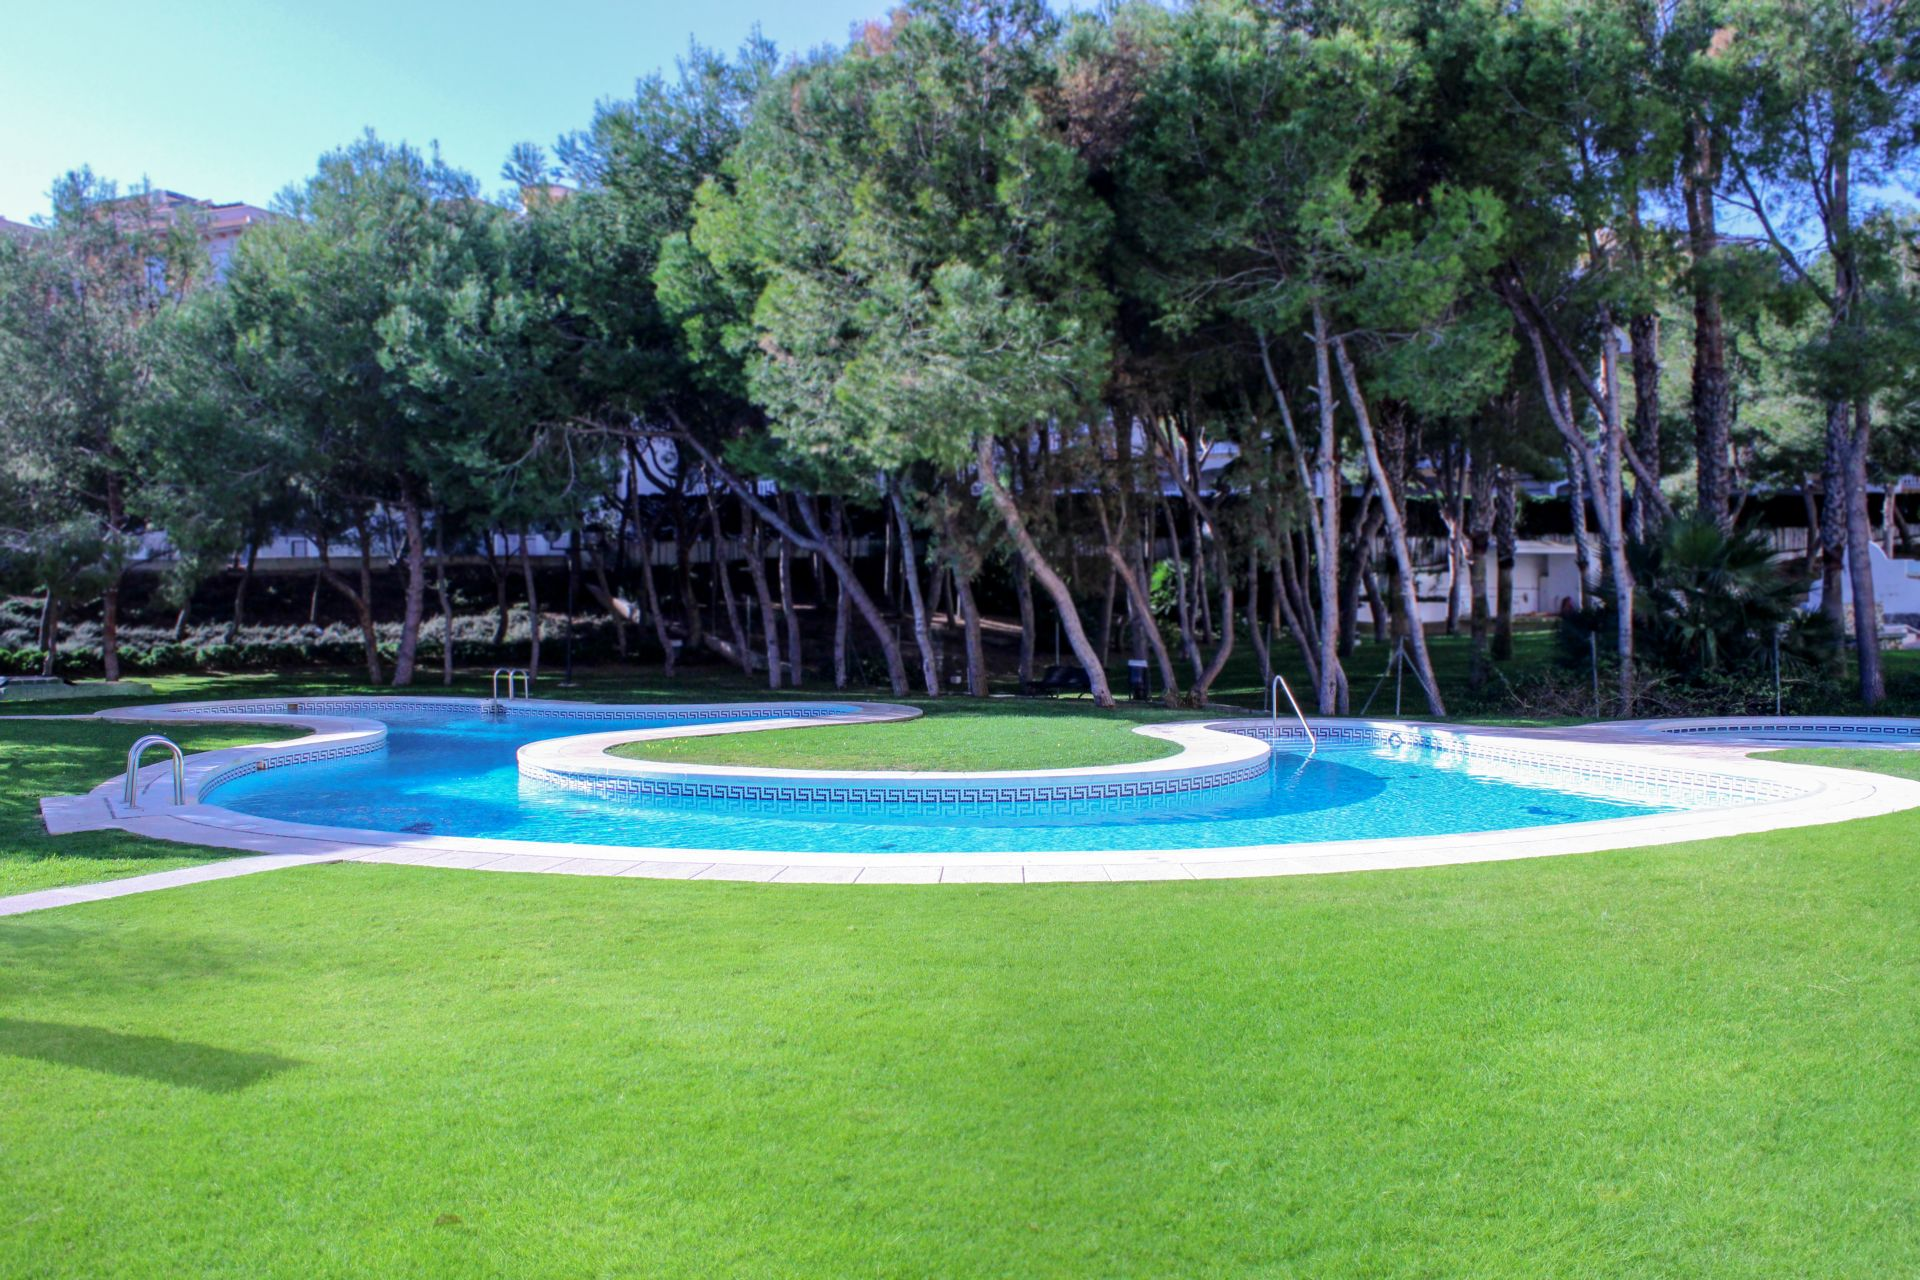 Apartments in Dehesa de campoamor 9